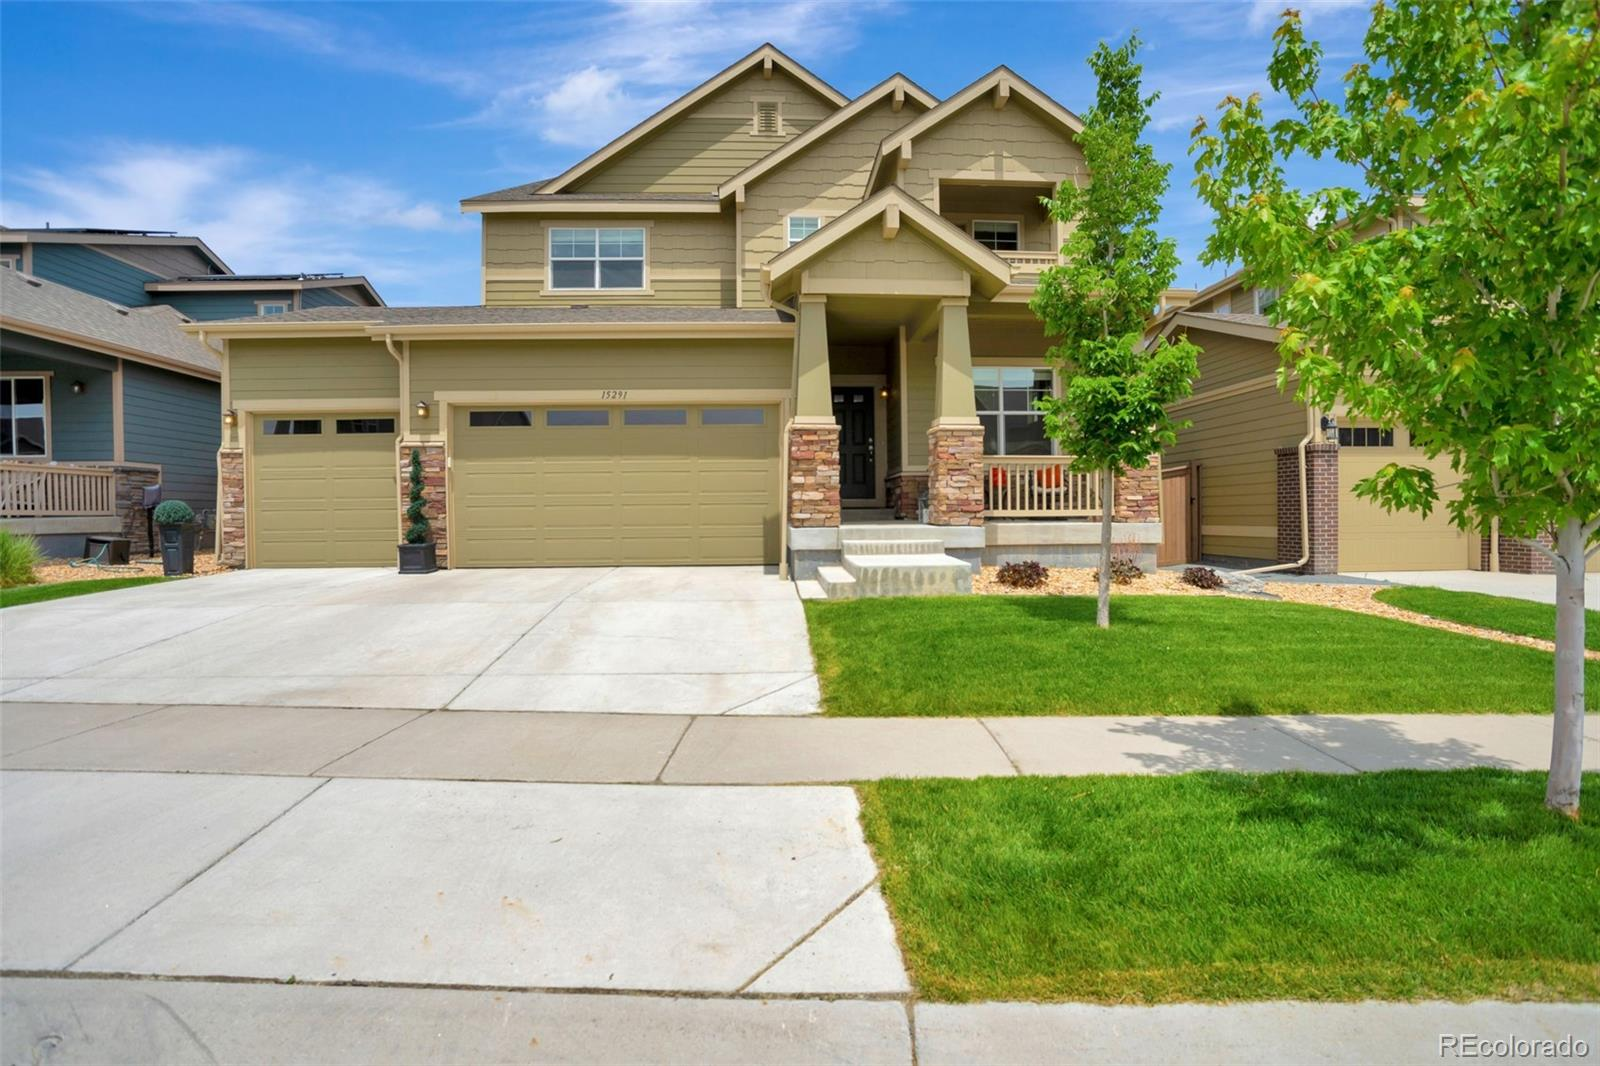 15291 W 50th Avenue Property Photo - Golden, CO real estate listing